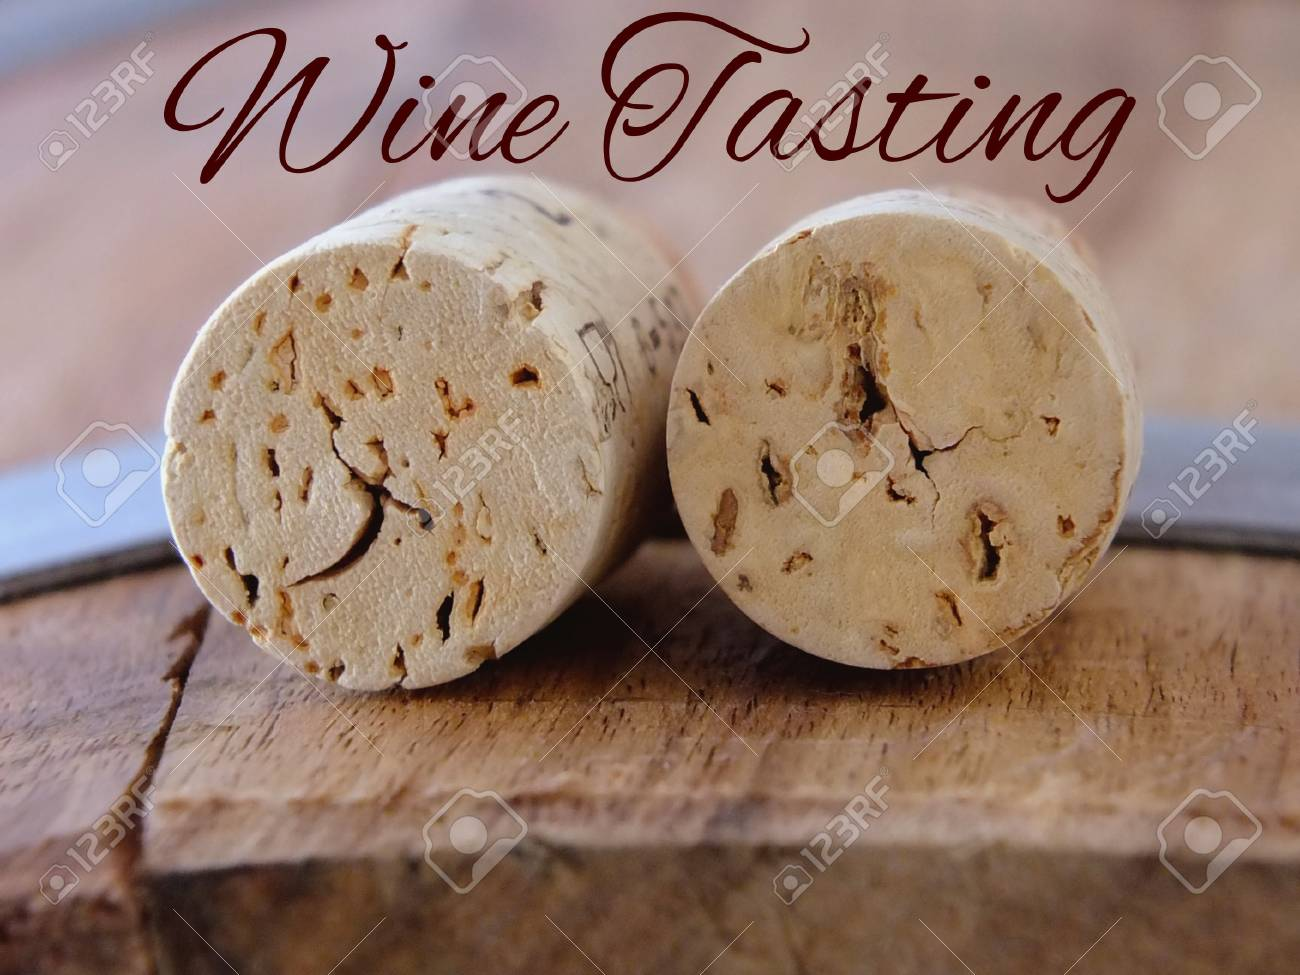 Image of two wine corks with lettering Standard-Bild - 48700107